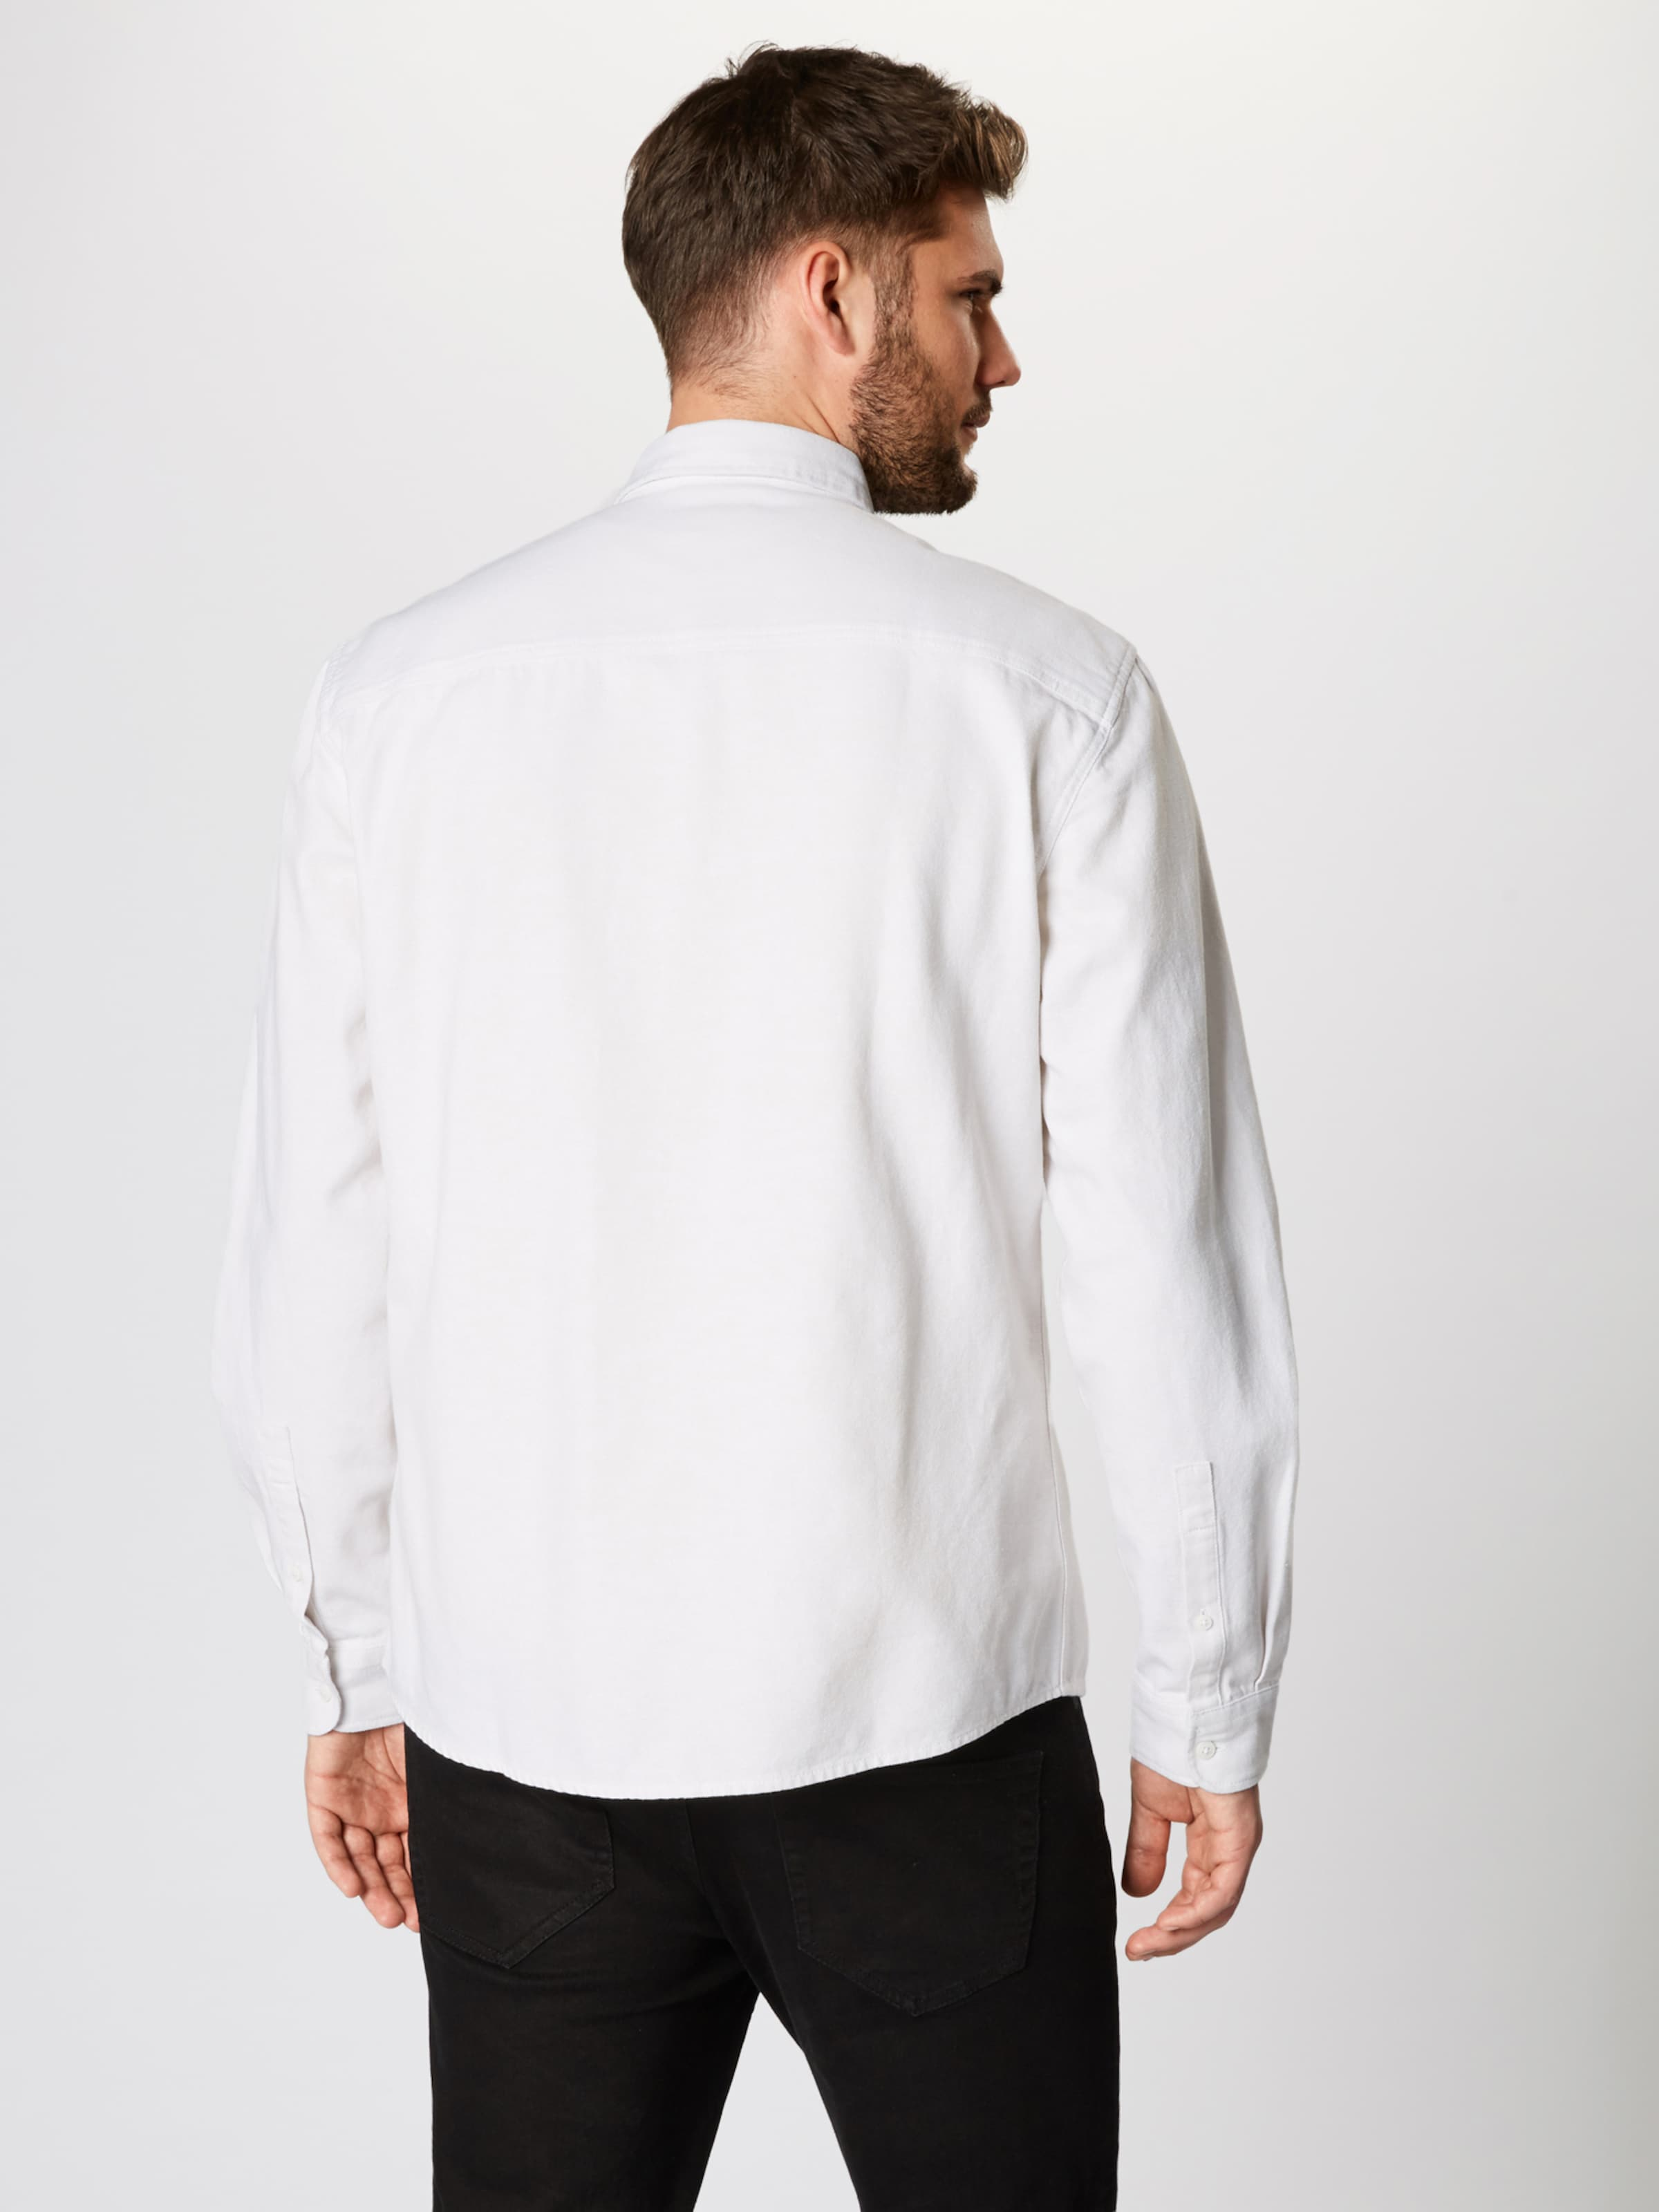 Offwhite Shirt' 'light Review Str In Hemd qzUpGSMLV